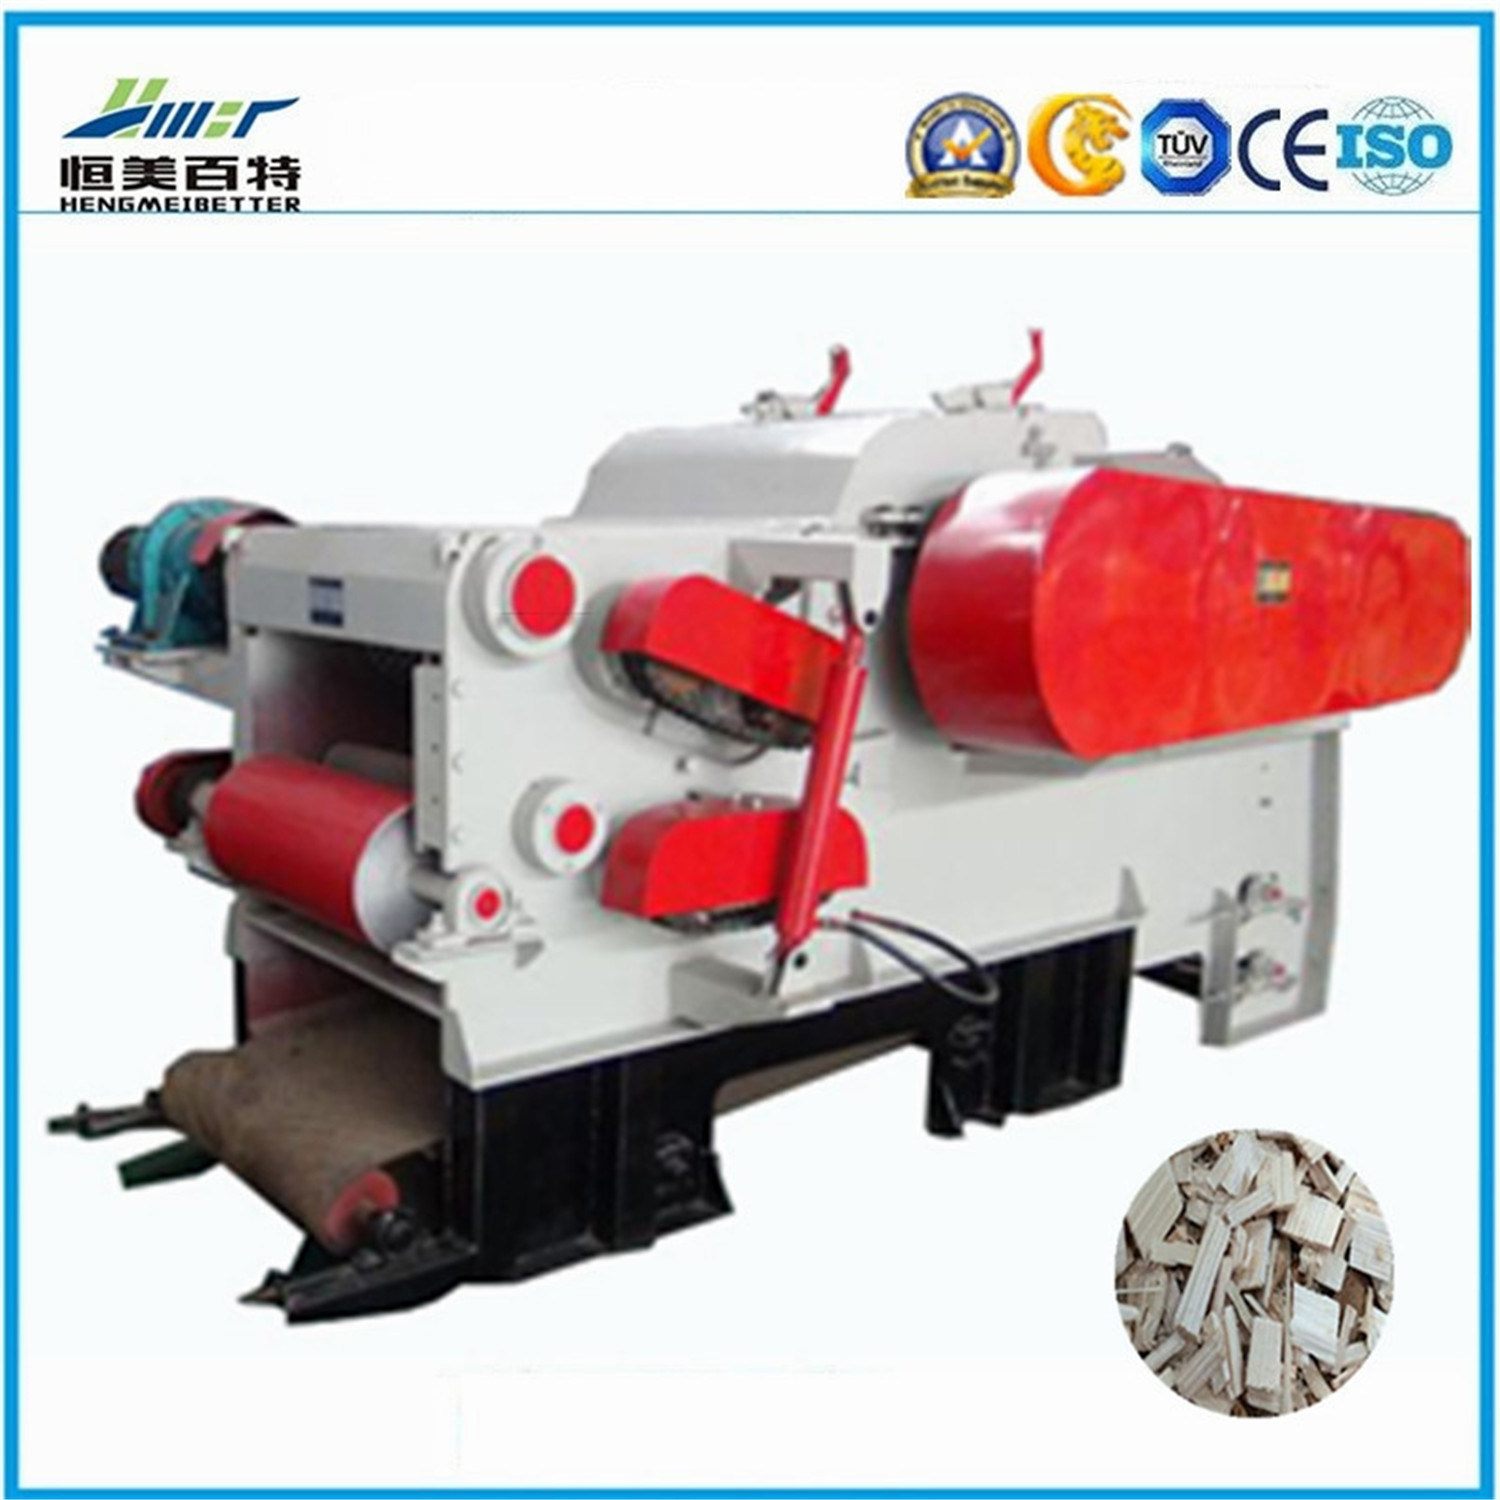 Large Capacity Diesel Engine Mobile Wood Chipper for Sale